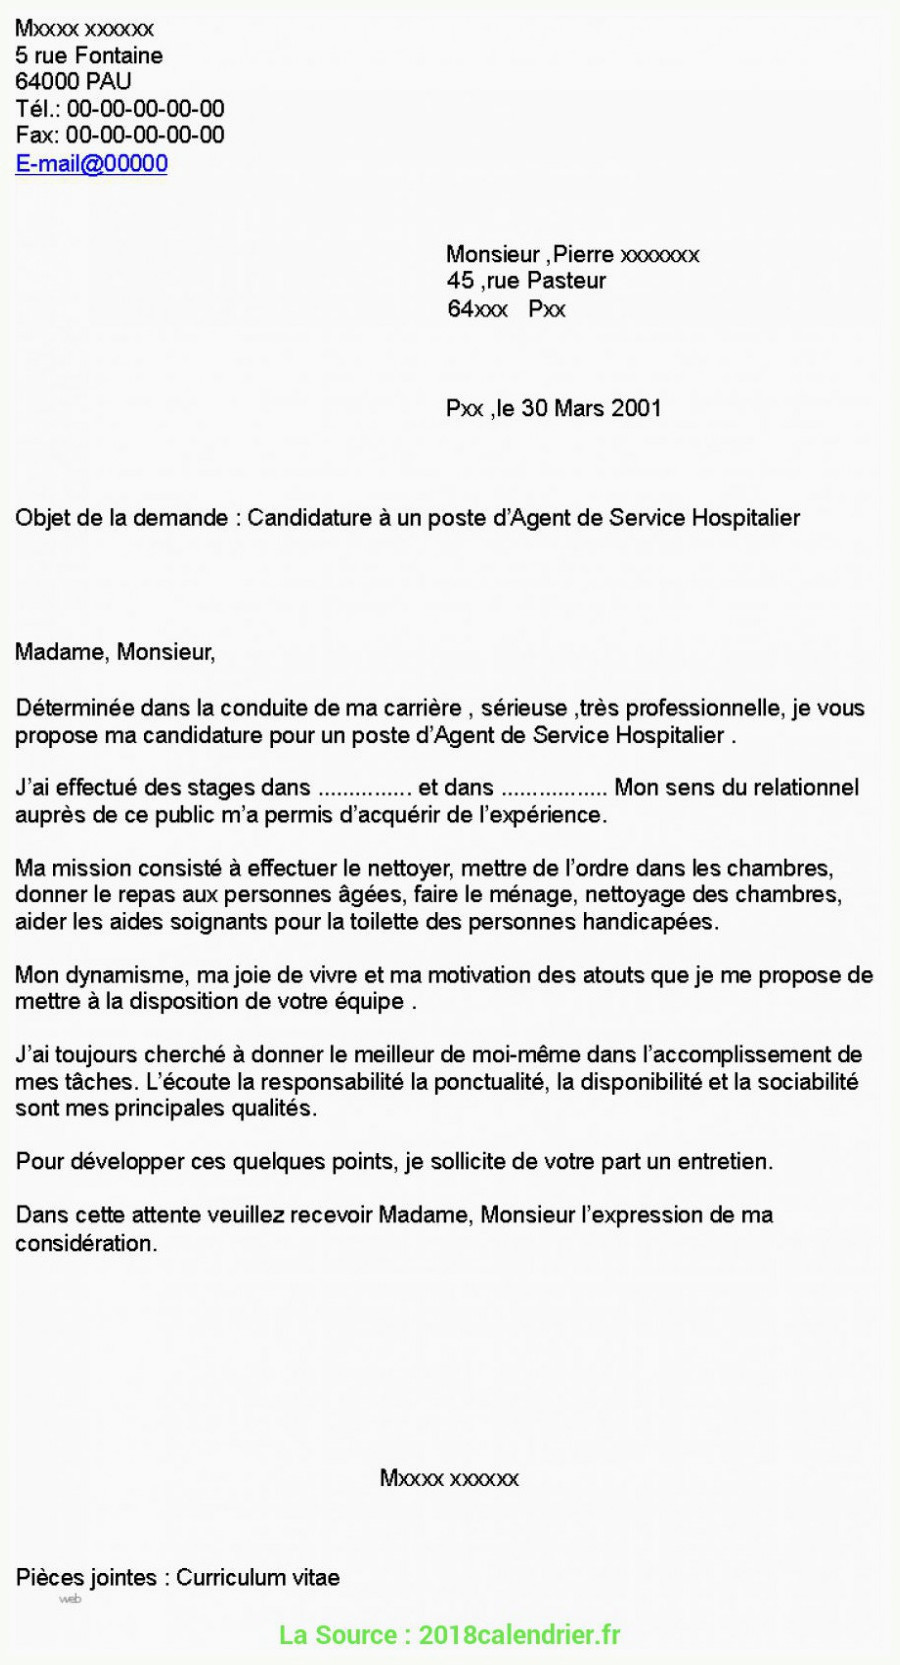 Lettre De Motivation Agent Administratif Mairie Simple Lettre De Motivation Pour Le Poste D Agent Administratif 56